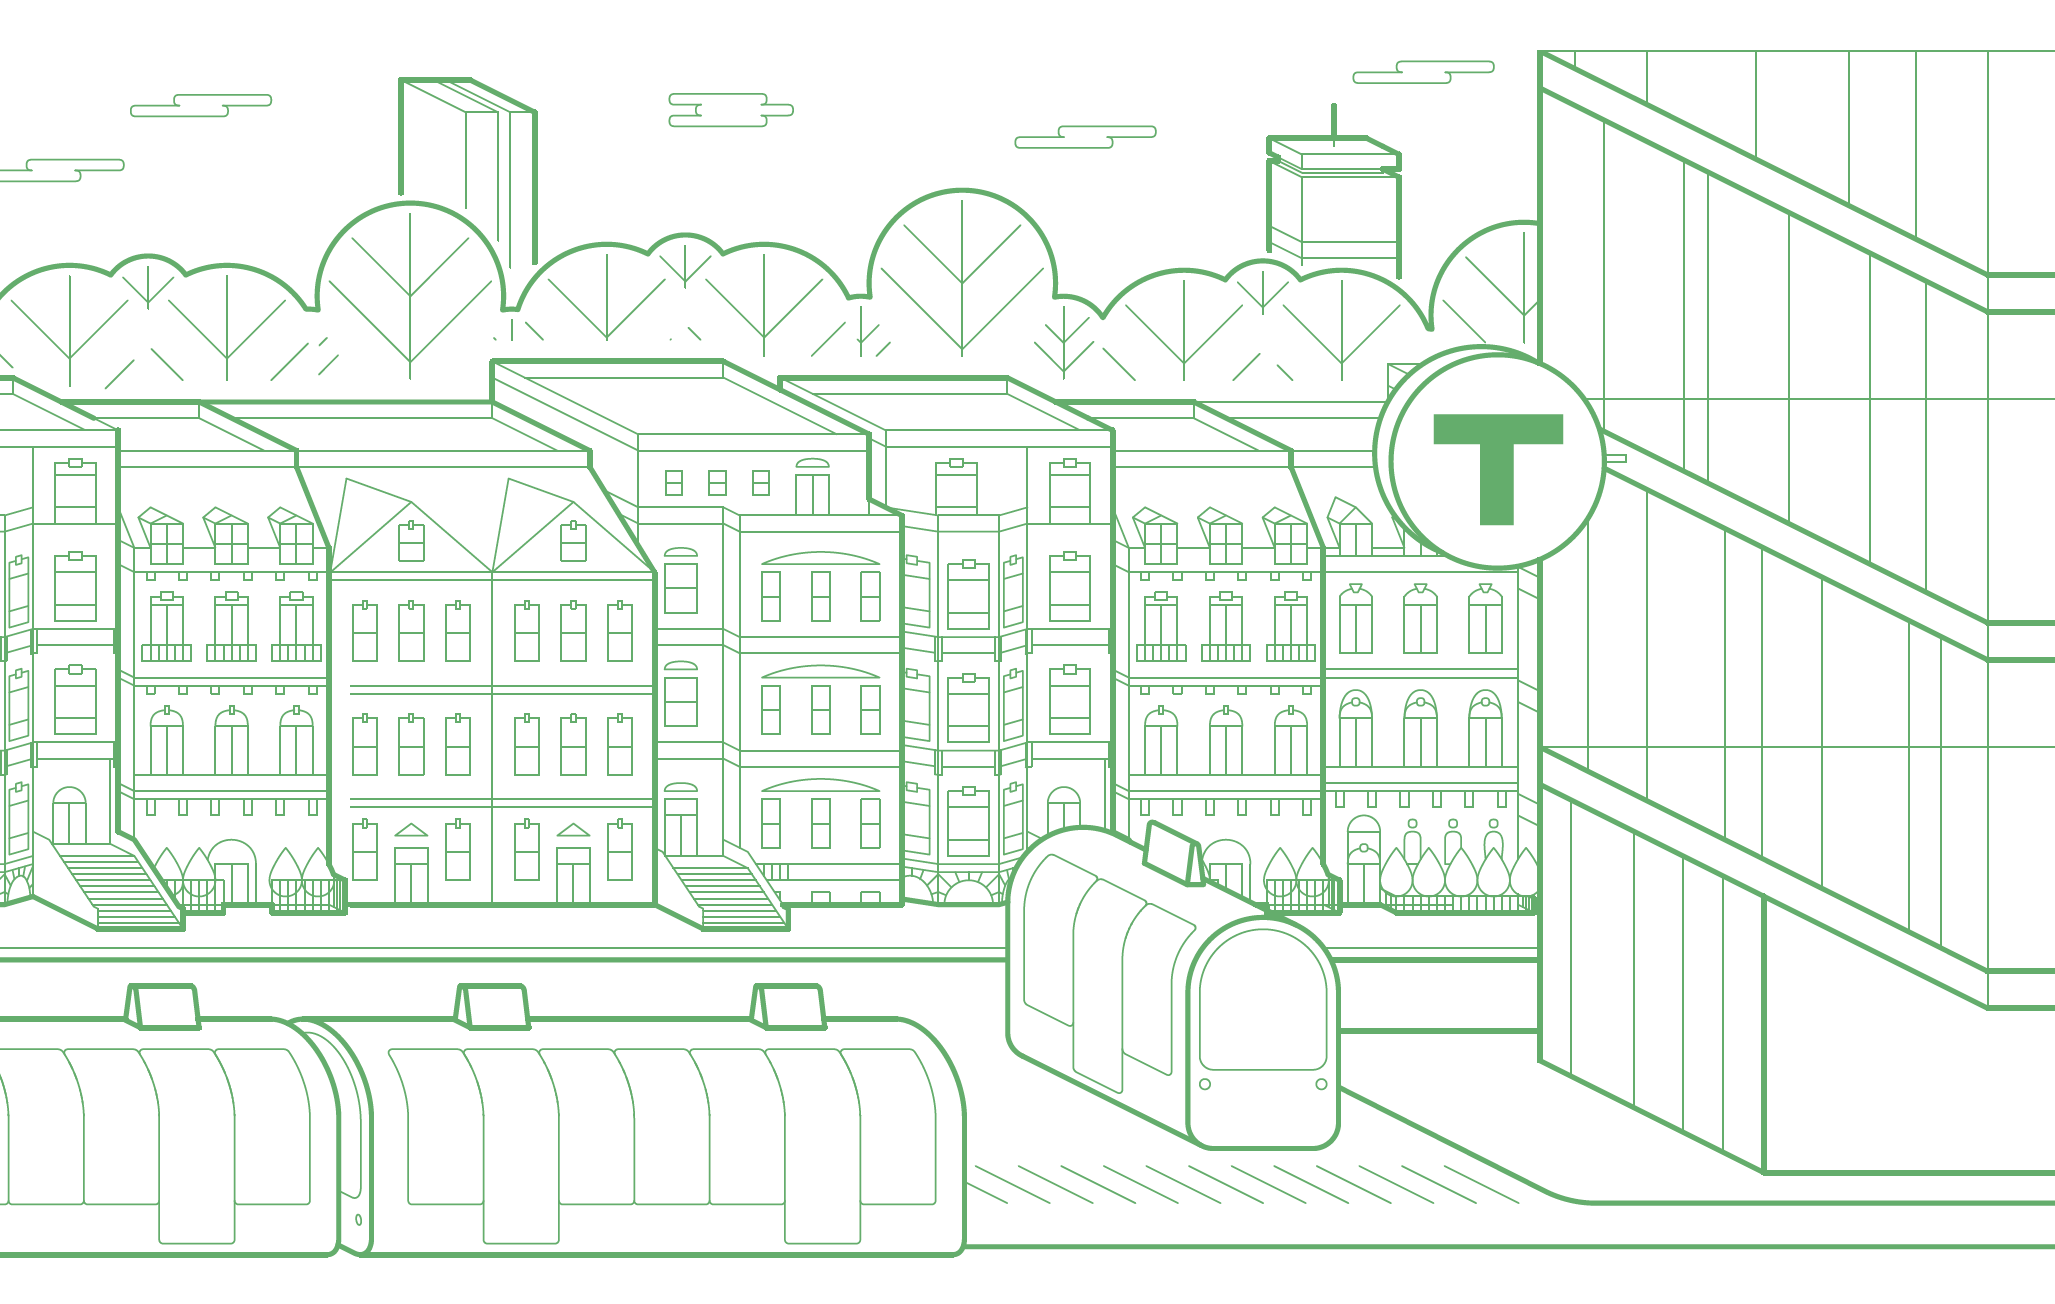 Illustration of the Boston cityscape, with brownstones, trains, and a T logo